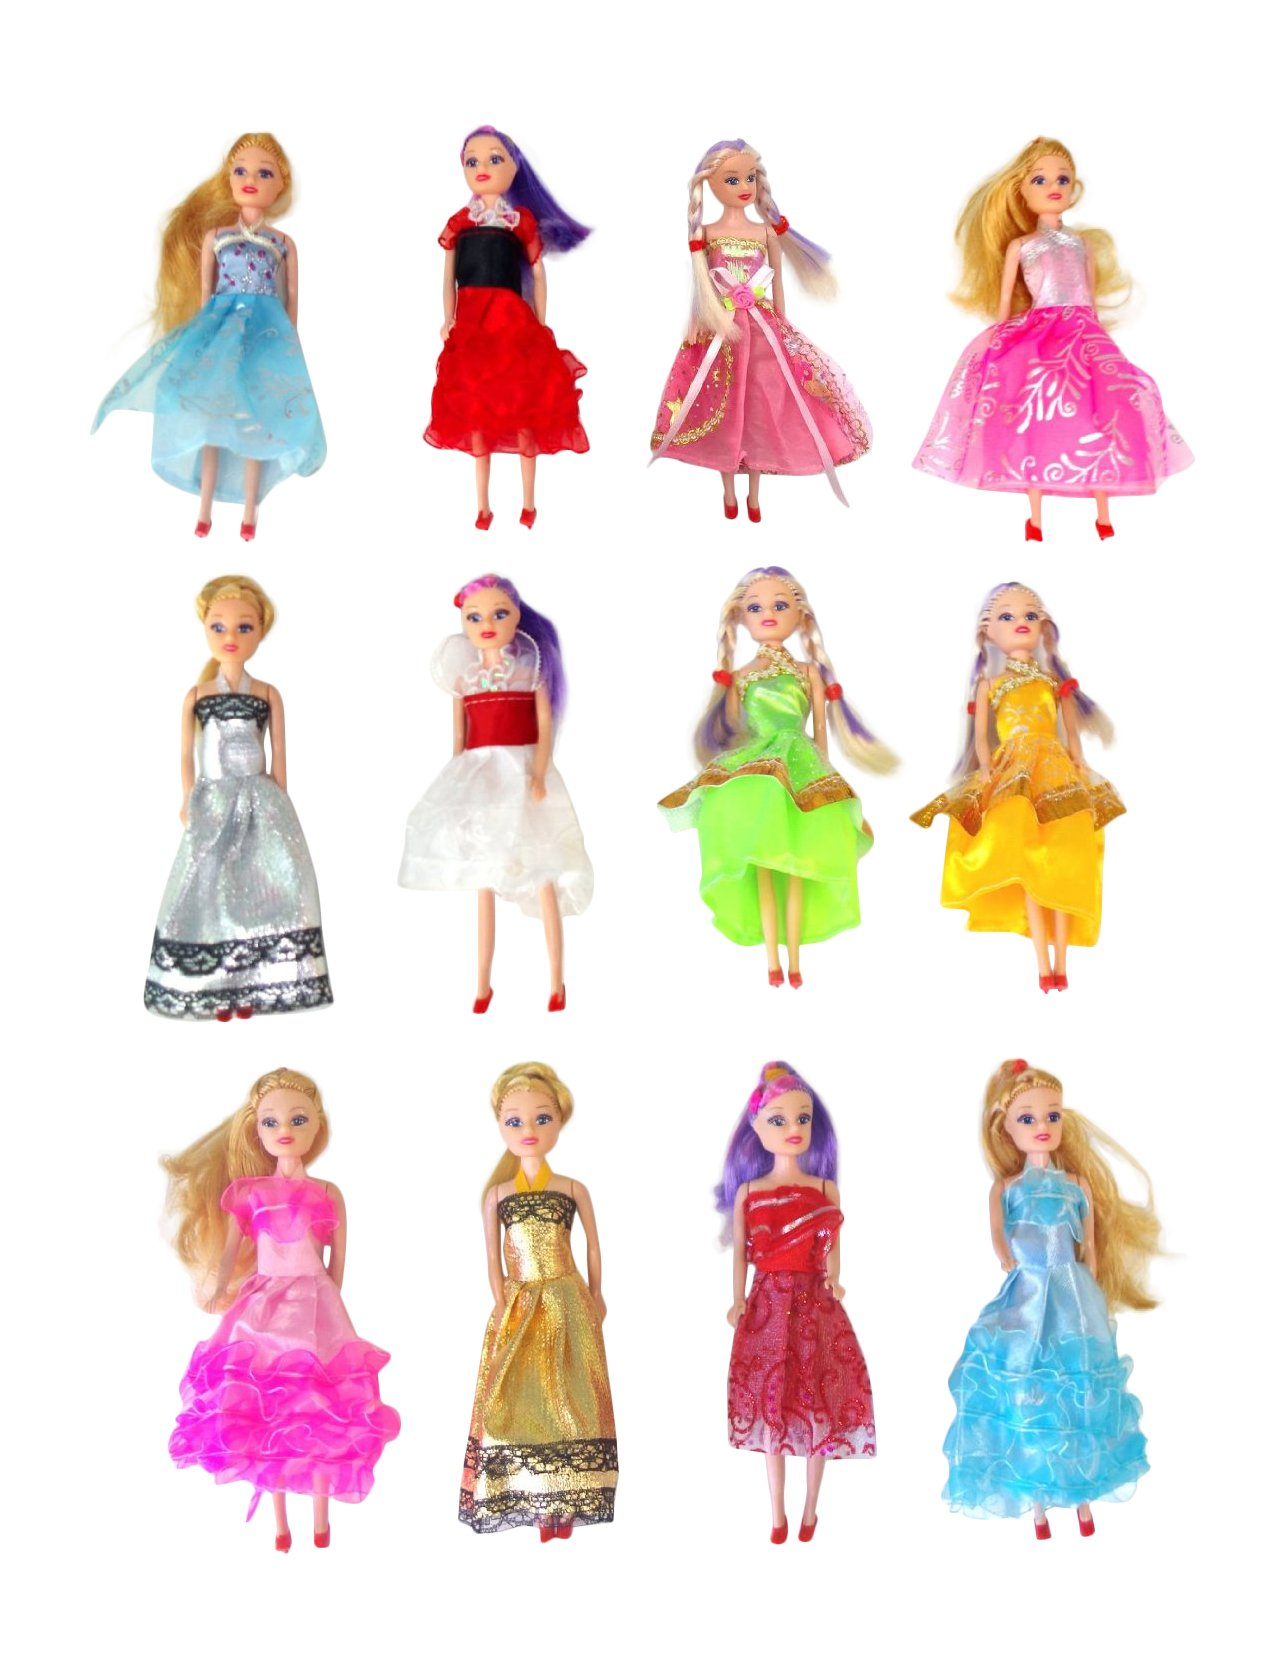 Miniature Doll 12-pack Play-set Bundle with Princess and Fashion Clothes Accessories. Great for birthday party favors, tea parties, and dollhouses. 6'' tall